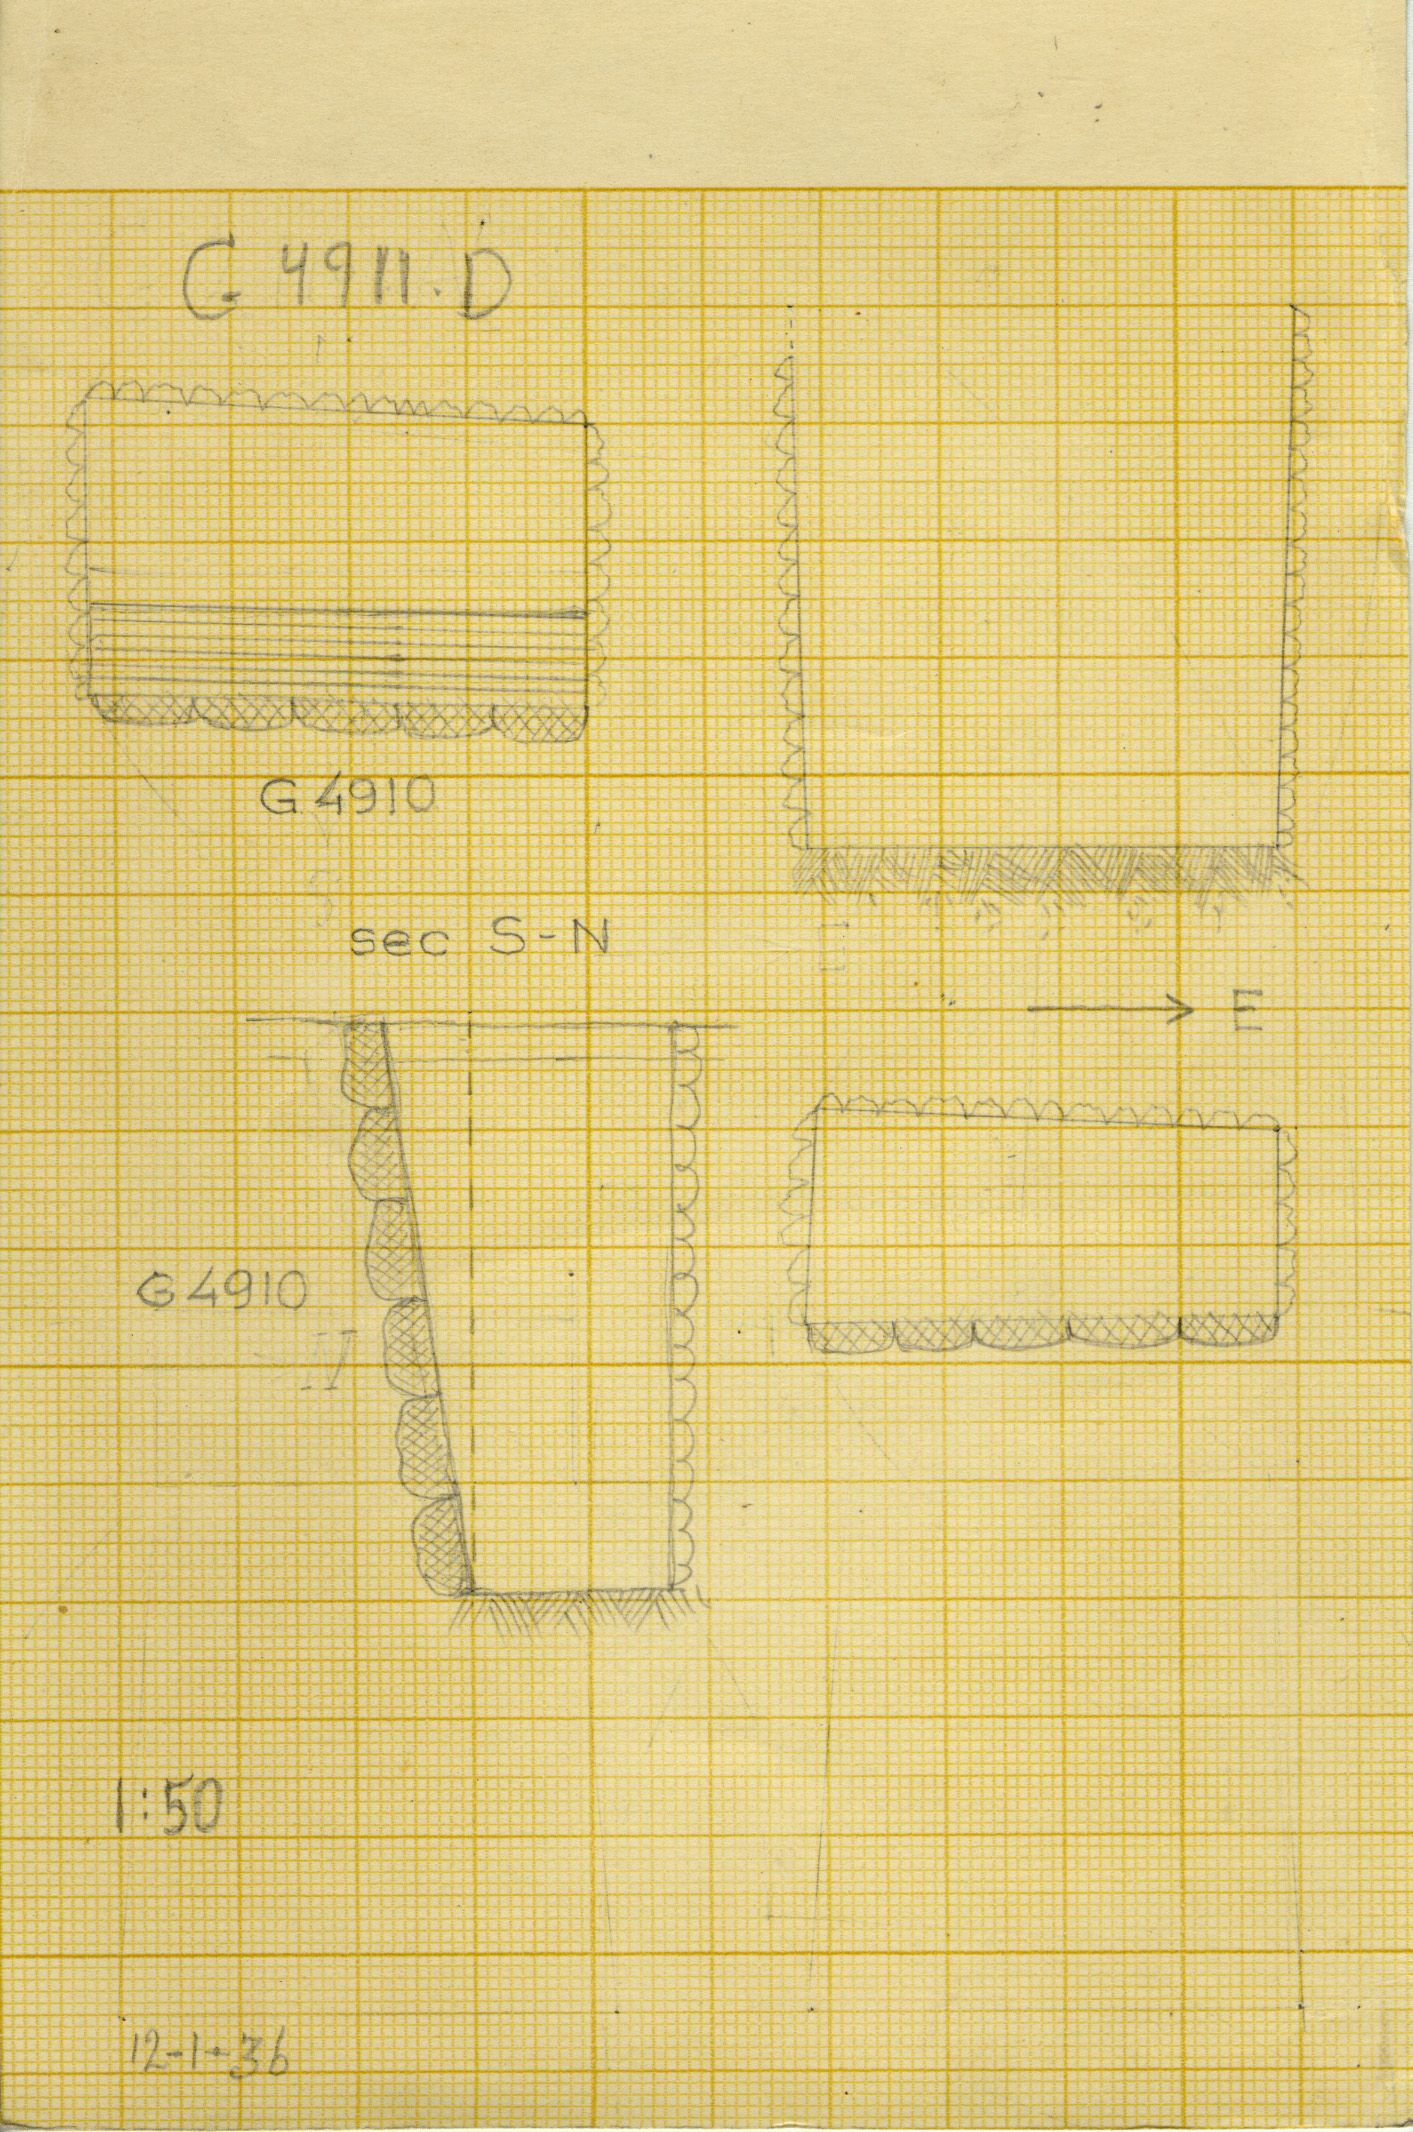 Maps and plans: G 4911, Shaft D